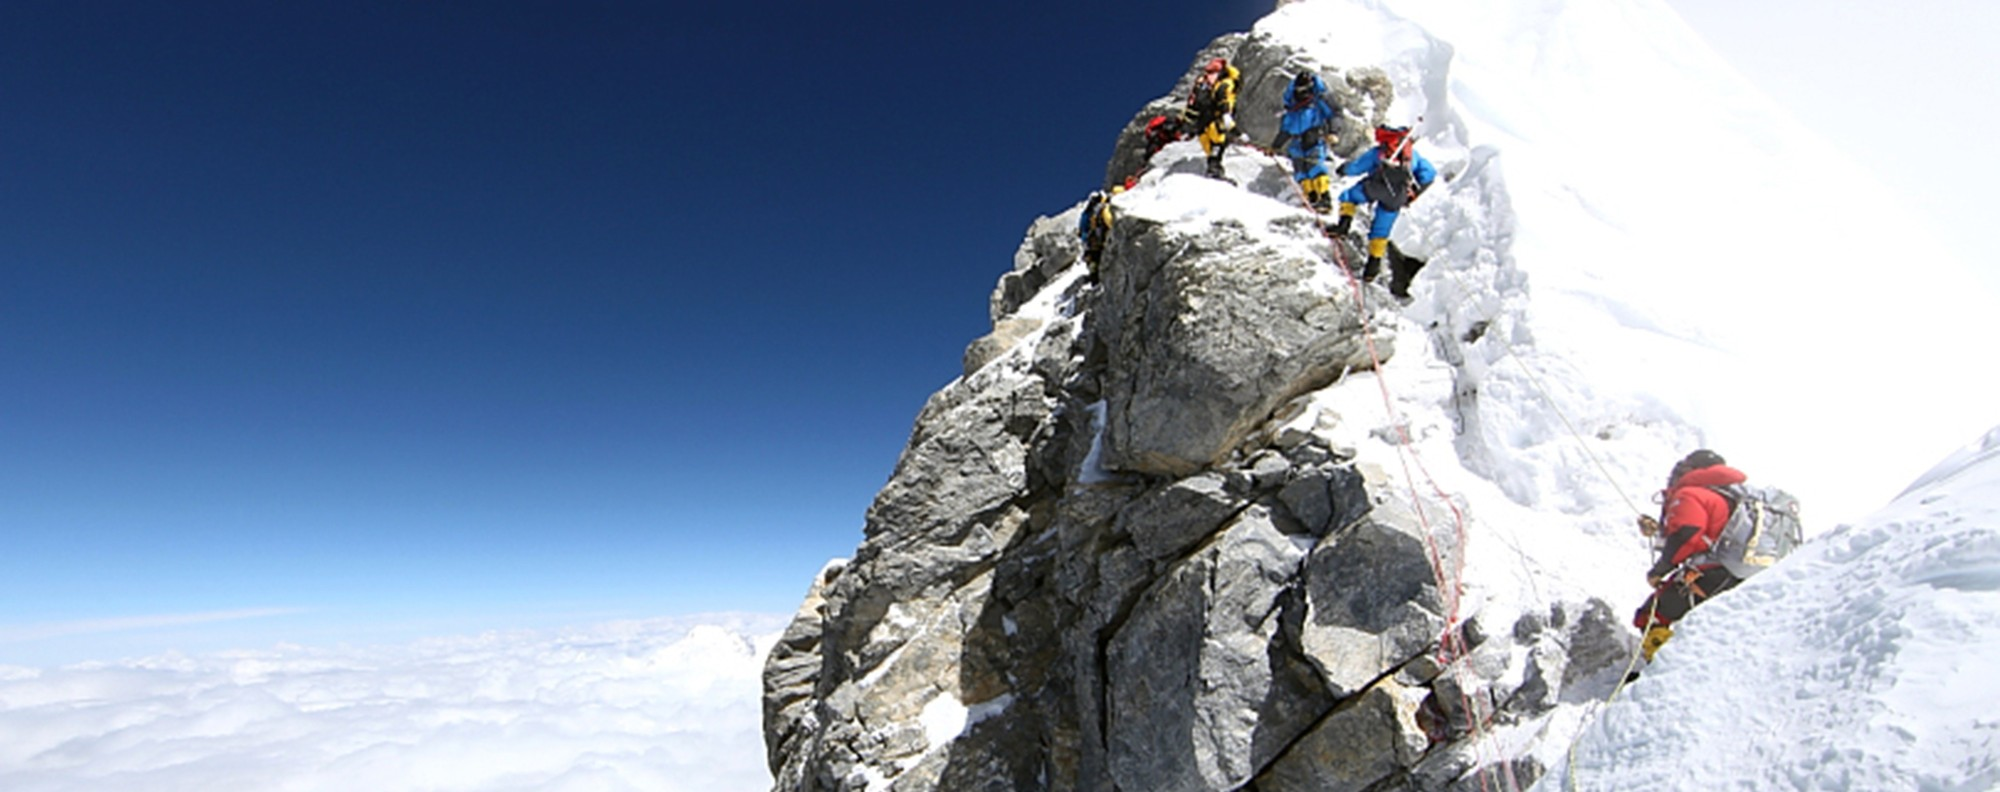 Mountaineers pass the Hillary Step heading for the summit of Everest.